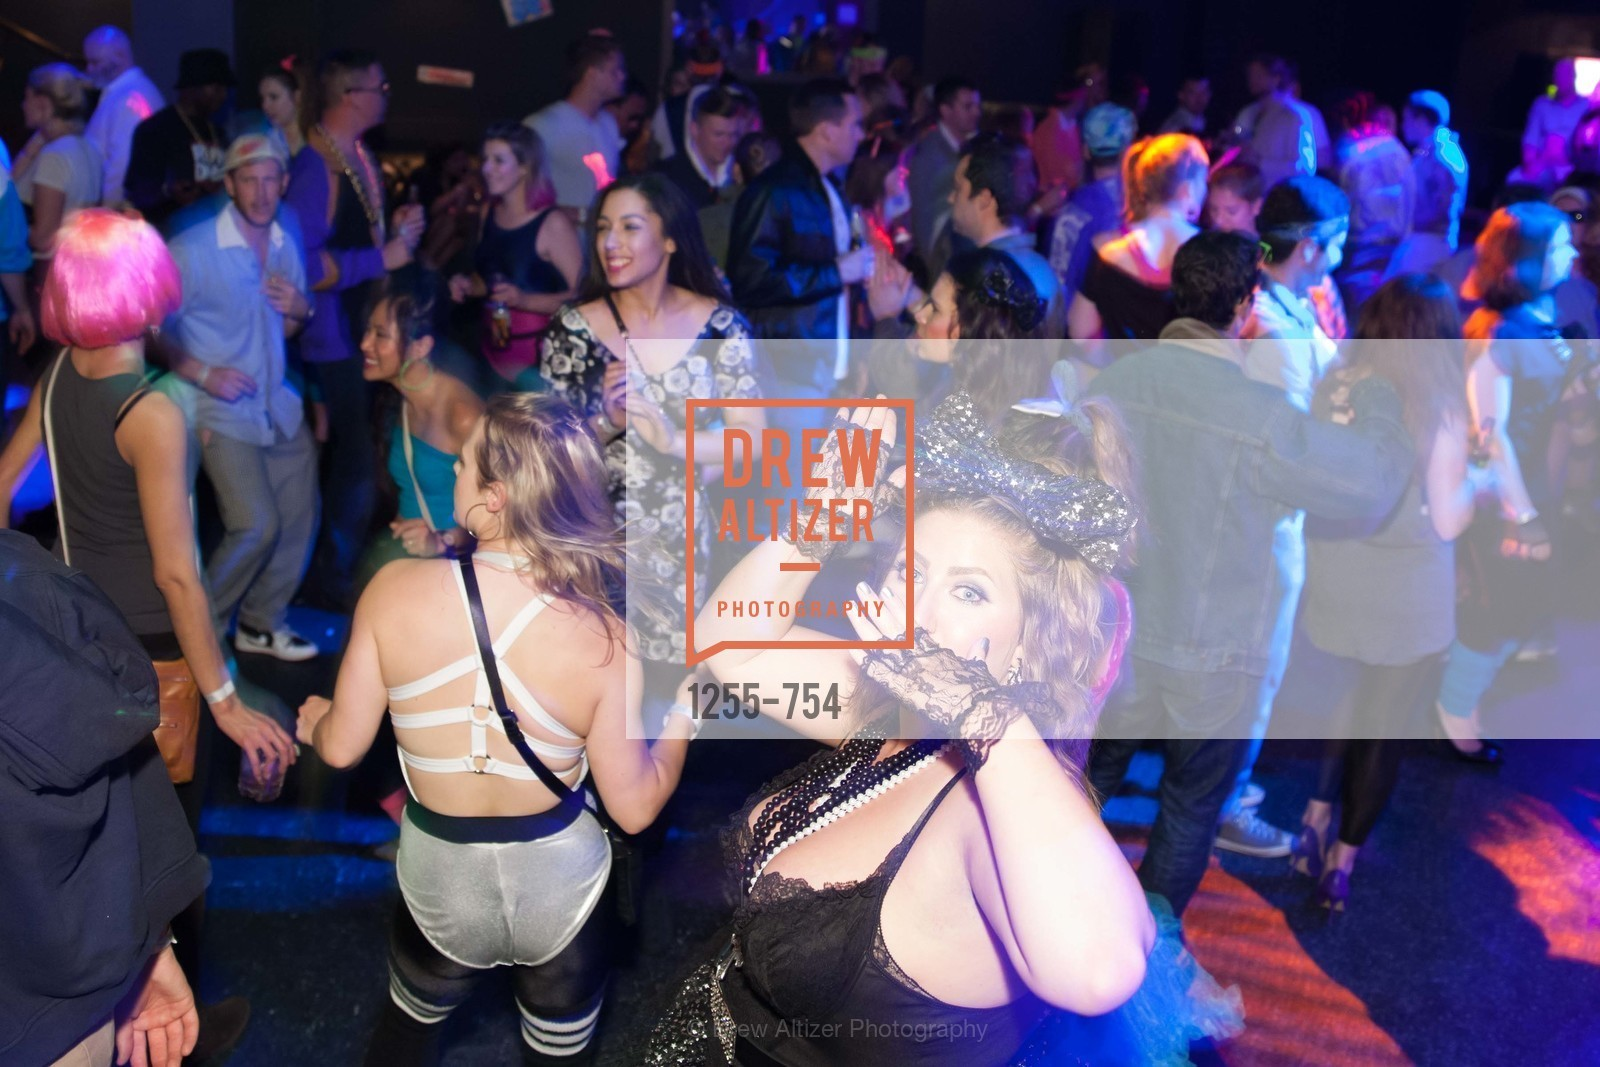 Atmosphere, SPINSTERS OF SAN FRANCISCO Party Like It's 1985 Charity Party, US, May 29th, 2015,Drew Altizer, Drew Altizer Photography, full-service agency, private events, San Francisco photographer, photographer california